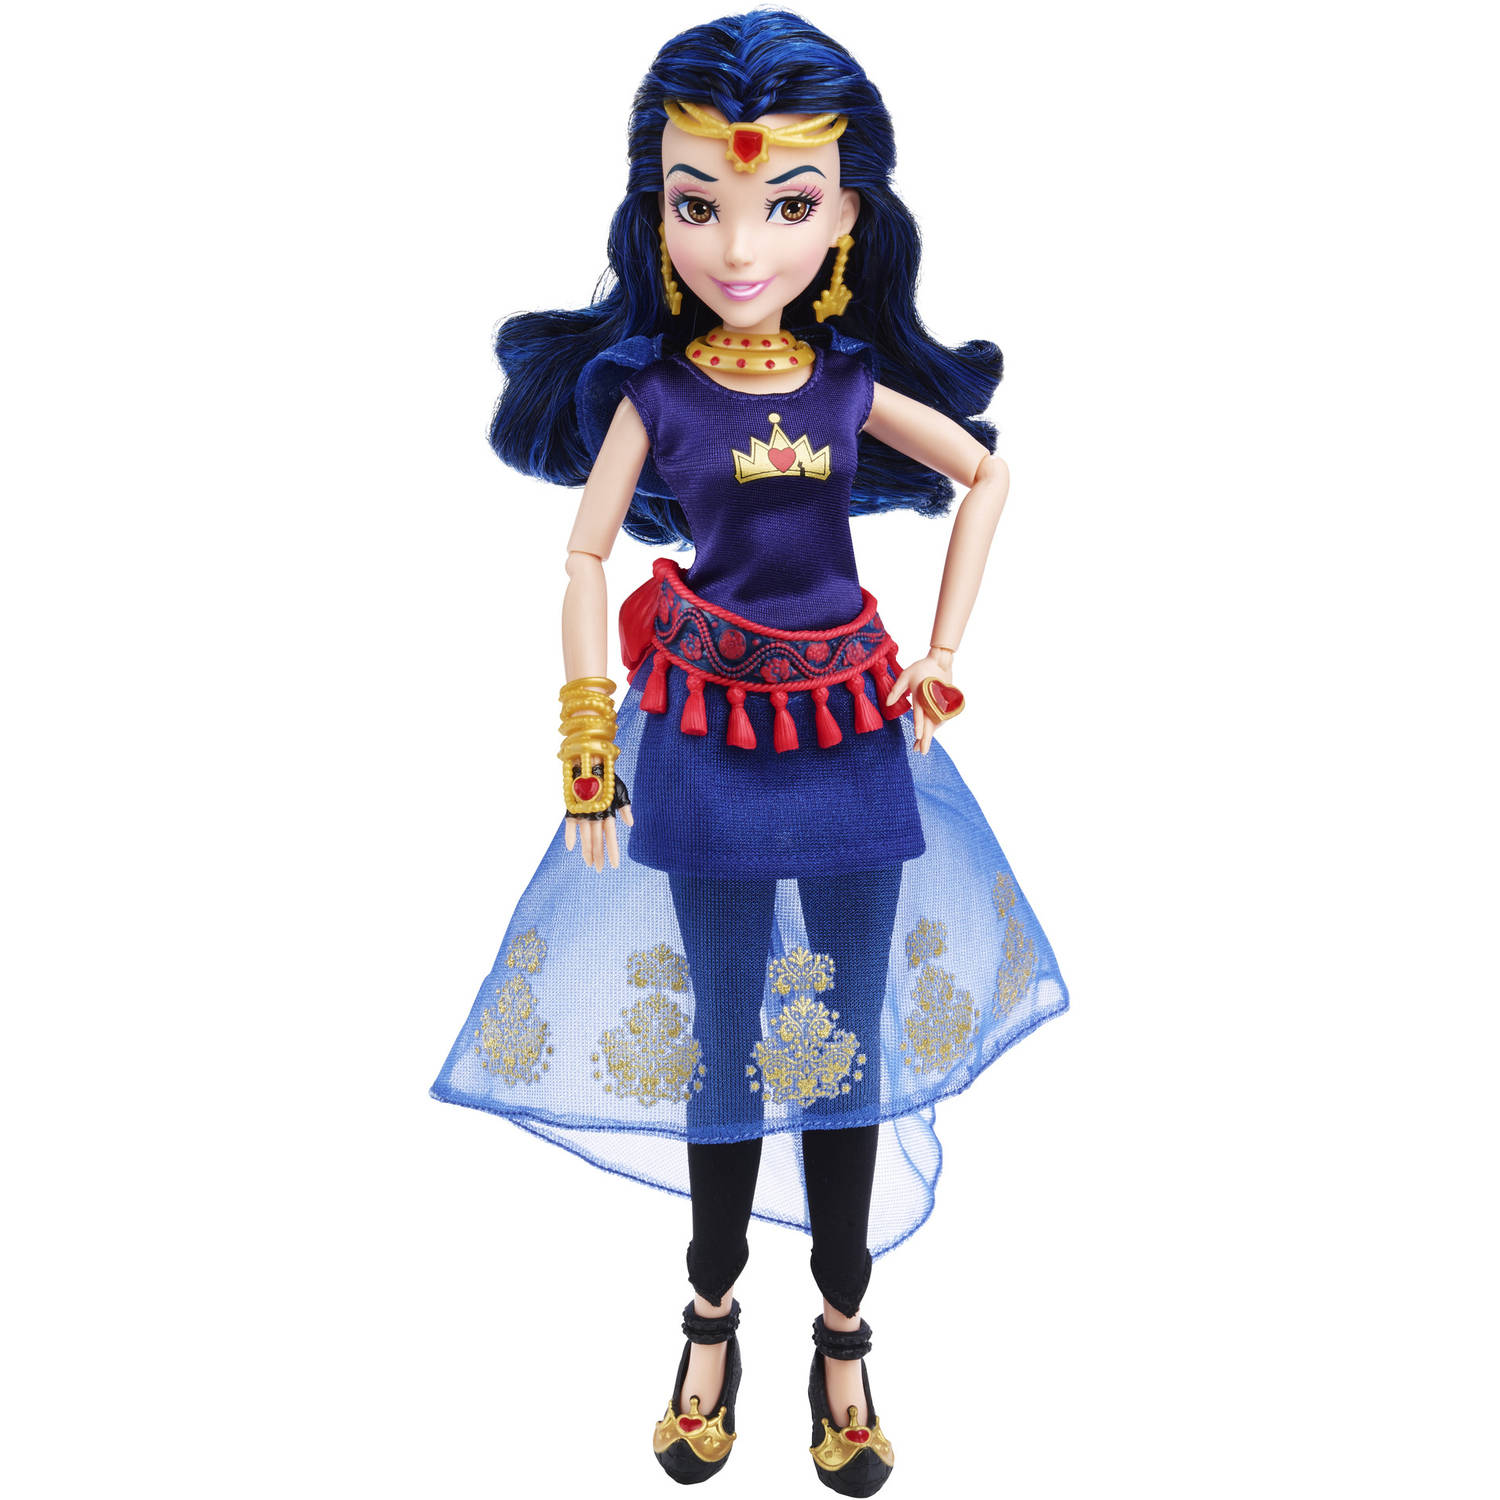 Disney Descendants Genie Chic Evie of Isle of the Lost by Hasbro